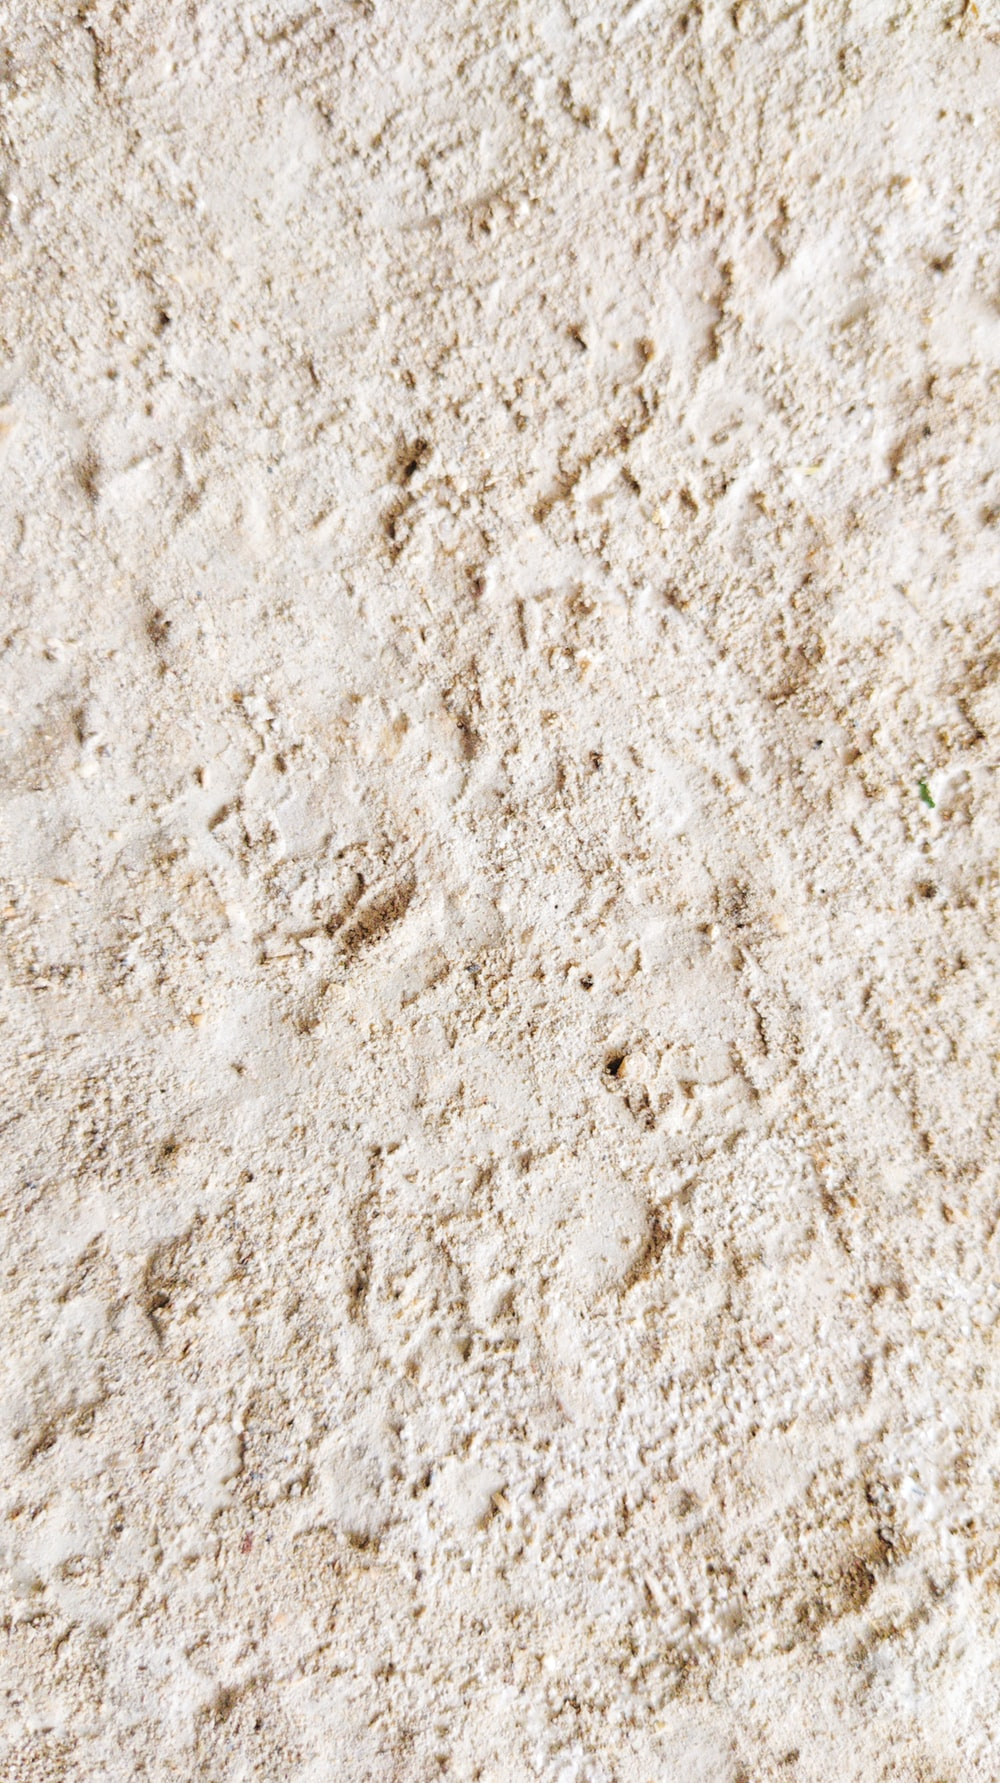 white and brown concrete floor